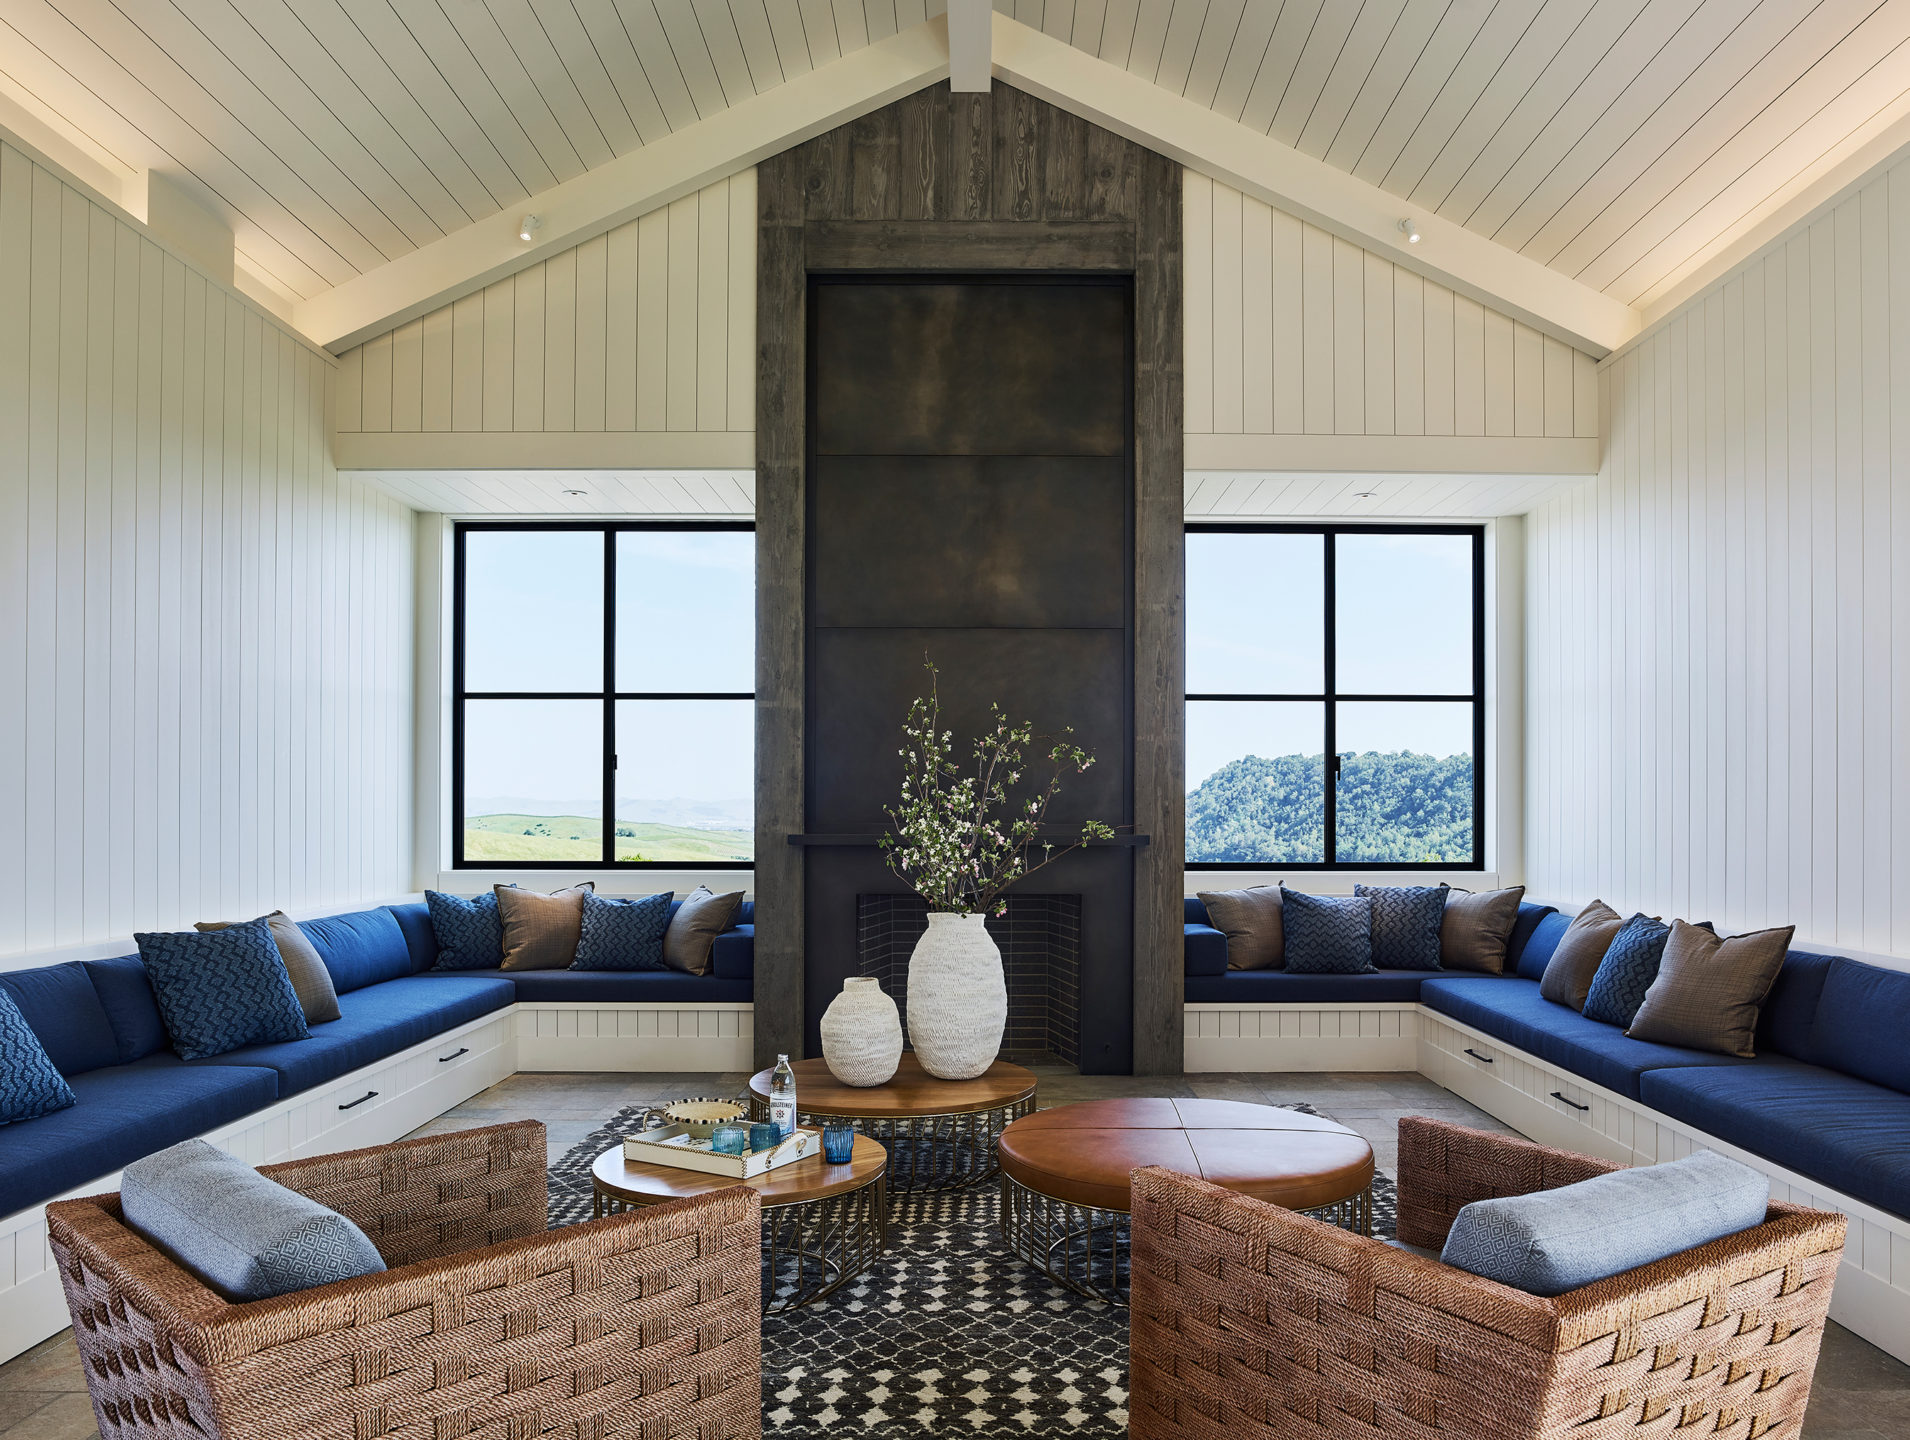 Jennifer_robins_interiors_projects_napa_valley_9_living_room_LR_fireplace